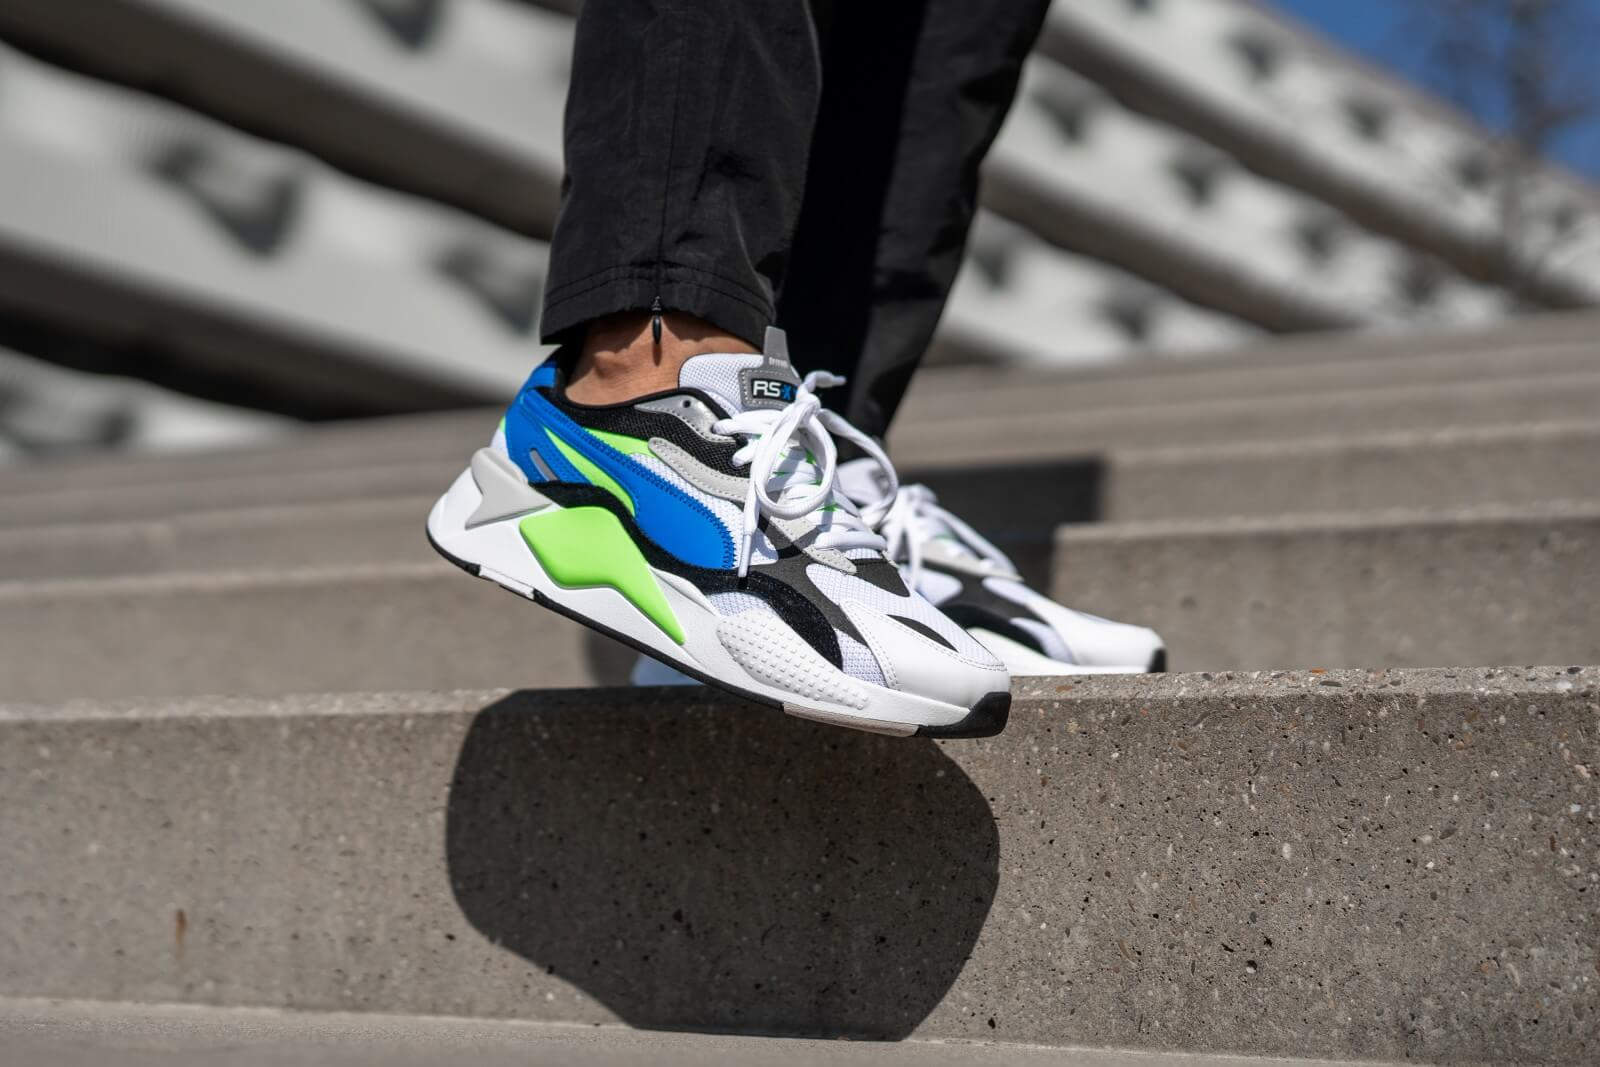 Puma RS-X3 Puzzle Soft Puma White/Electric Blue Lemonade - 368826-01